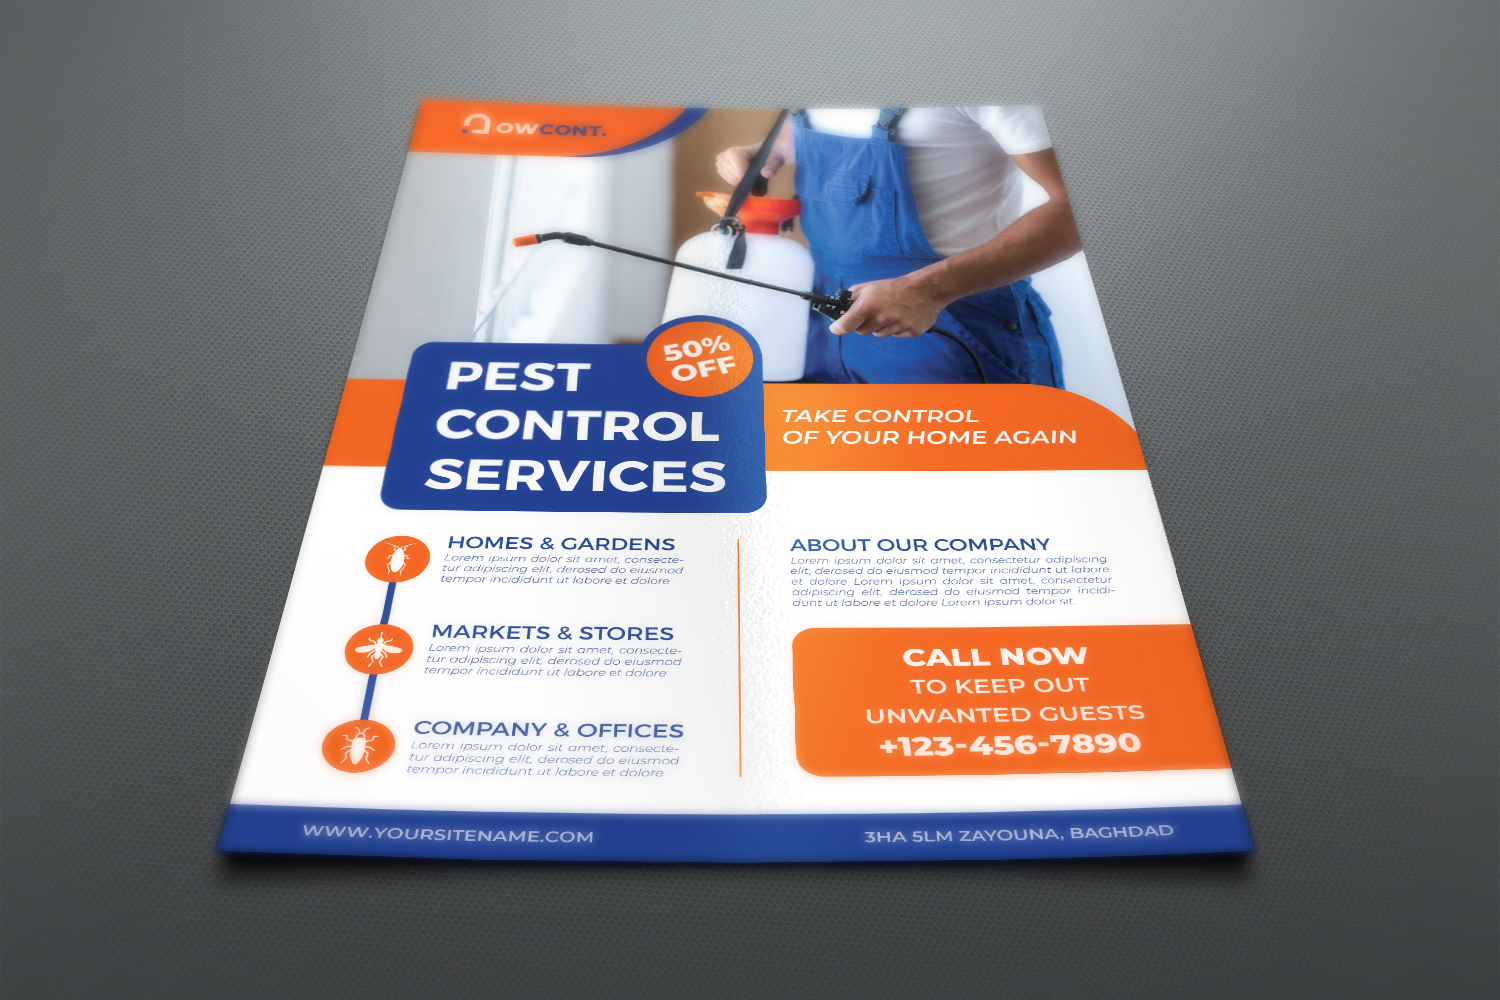 Pest Control Services Flyer Template example image 2